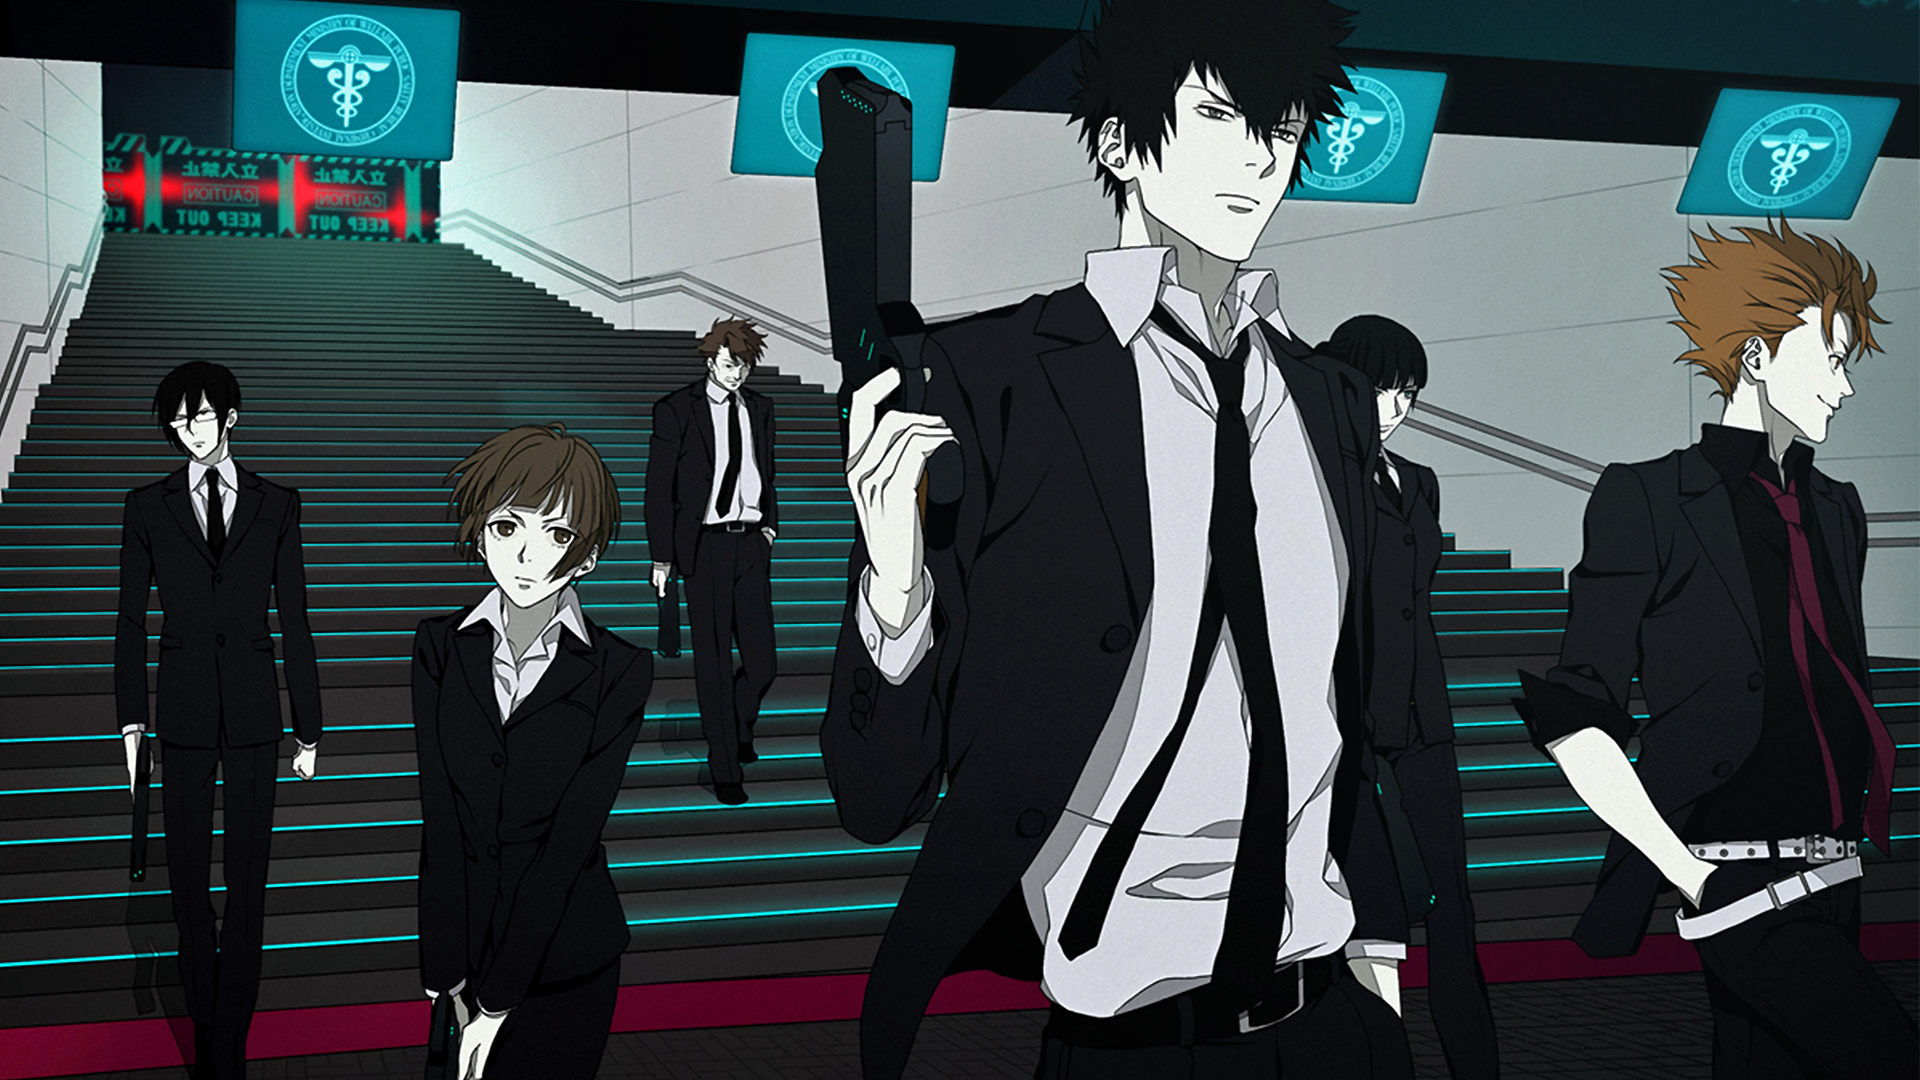 Psycho Pass Movie Wallpaper 7   1920 X 1080 stmednet 1920x1080